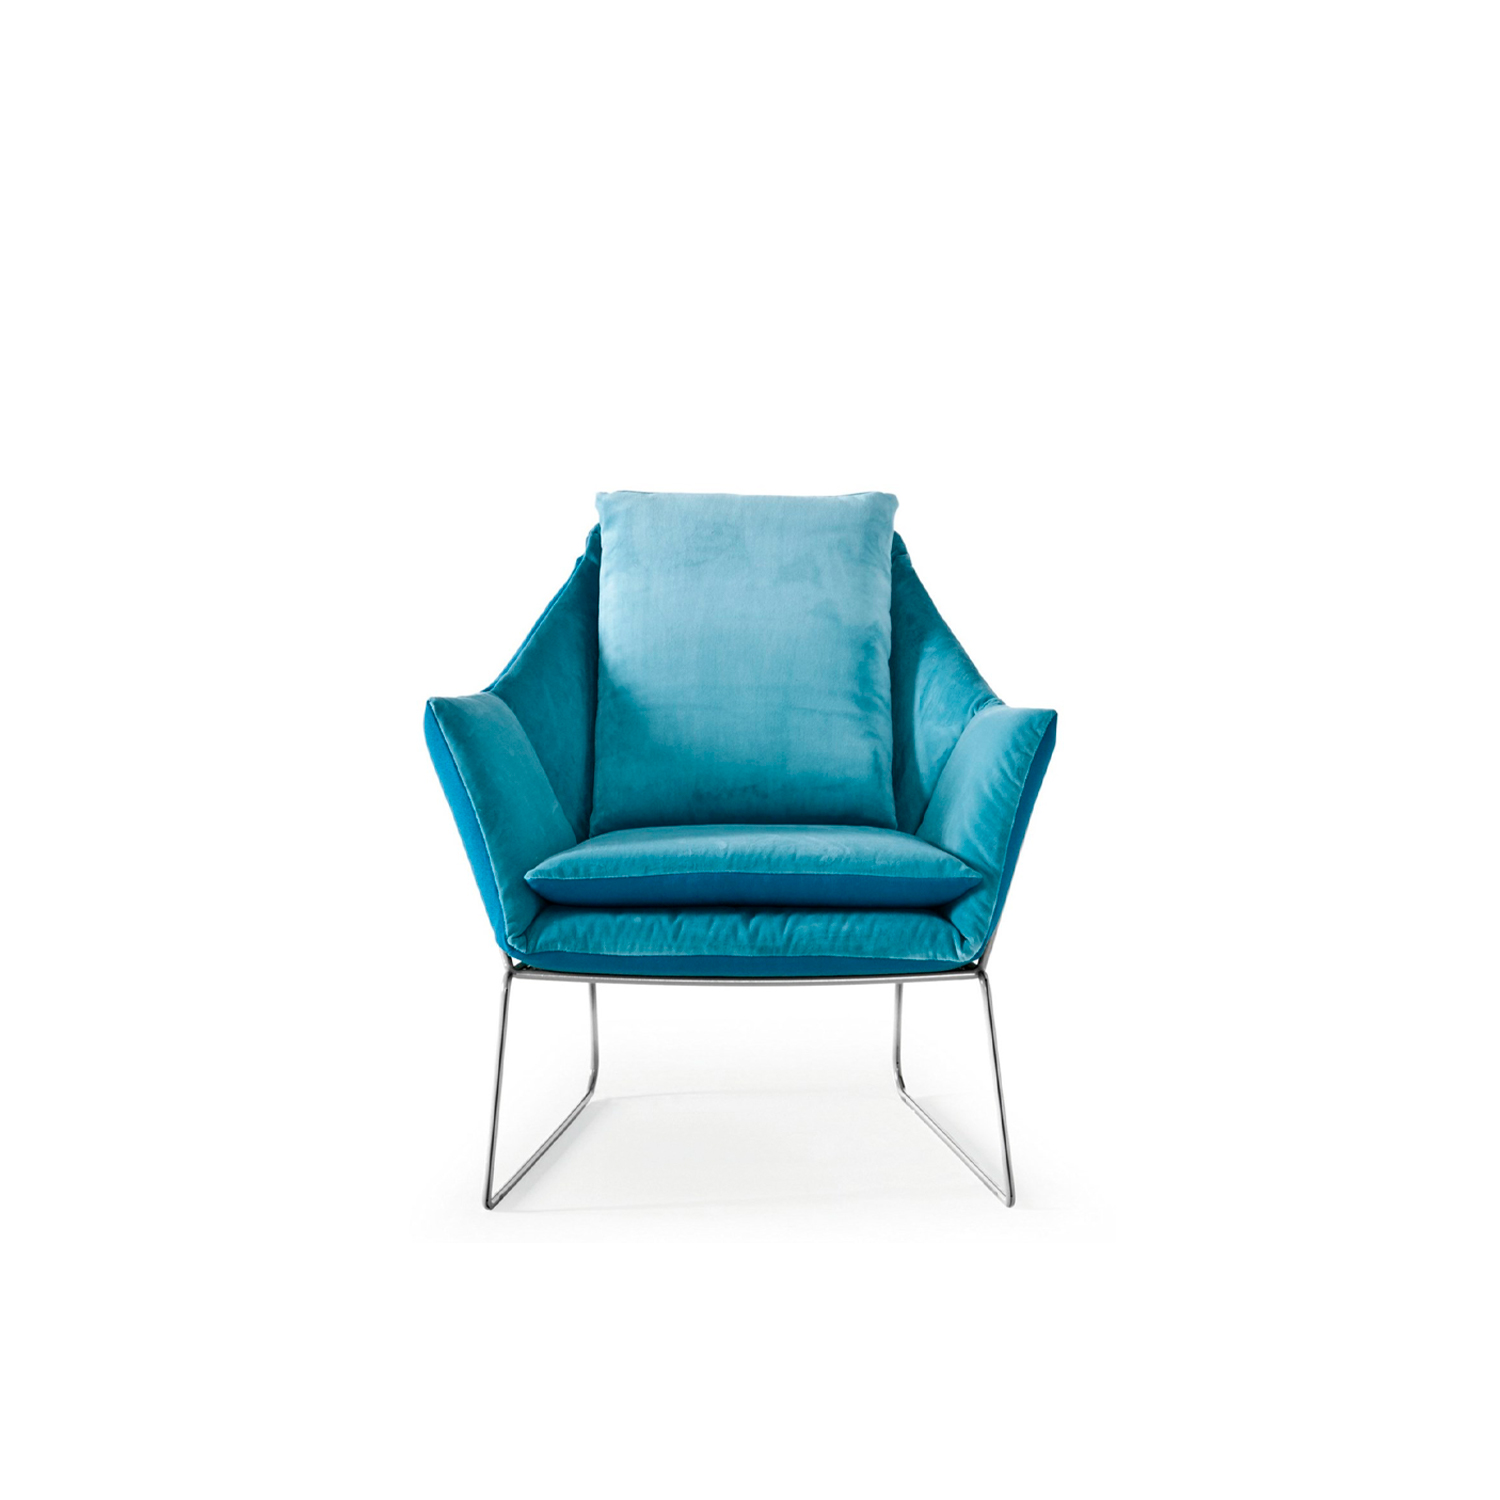 New York Lounge Armchair - New York is a collection which proudly bears the name of the Big Apple. Two souls, uptown and downtown, enclosed in a single design piece whose fully changeable covers reveal its innate versatility. The New York lounge chair, with its essential metal frame and endless possibilities of the double textile cushion, allows for a high degree of personalization. The frame in iron rod comes in many colours and coating finishes. Fully removable covers.  Additional removable cover is available, please enquire for prices.  Materials: Structure in 12 mm wire drawn. The seat is in perforated sheet metal. Chrome or painted finish. Inner core, seat and back cushions are filled with polyurethane foam, covered with cotton and polyester fiber. | Matter of Stuff